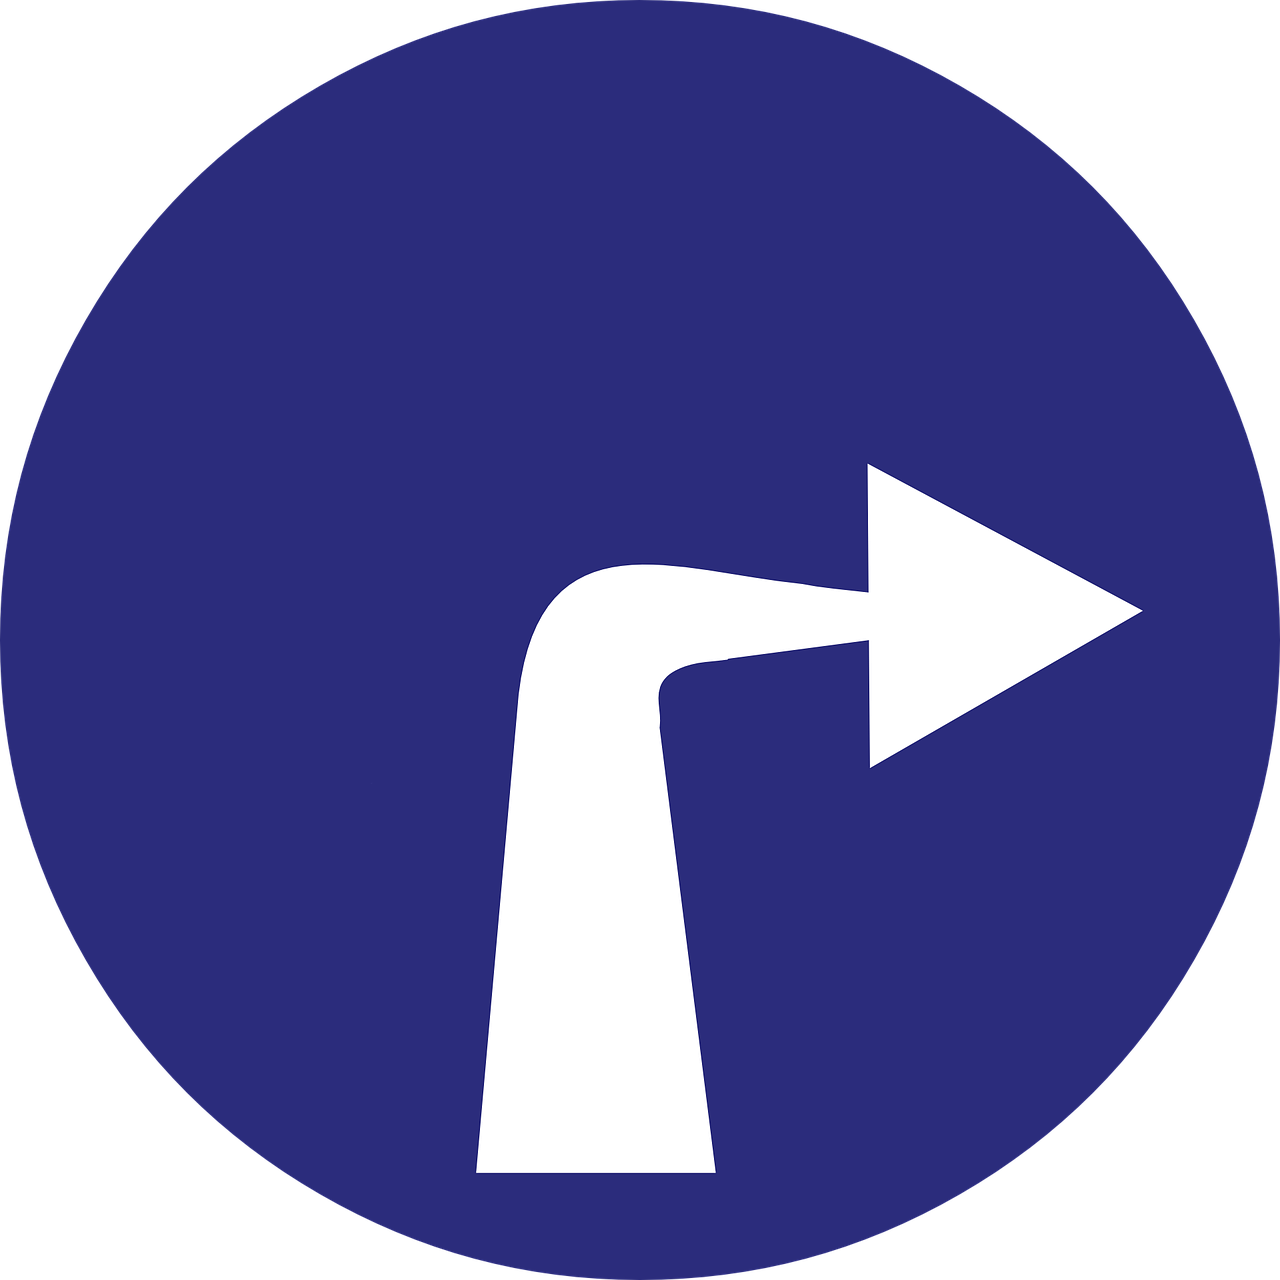 turn right arrow direction free photo